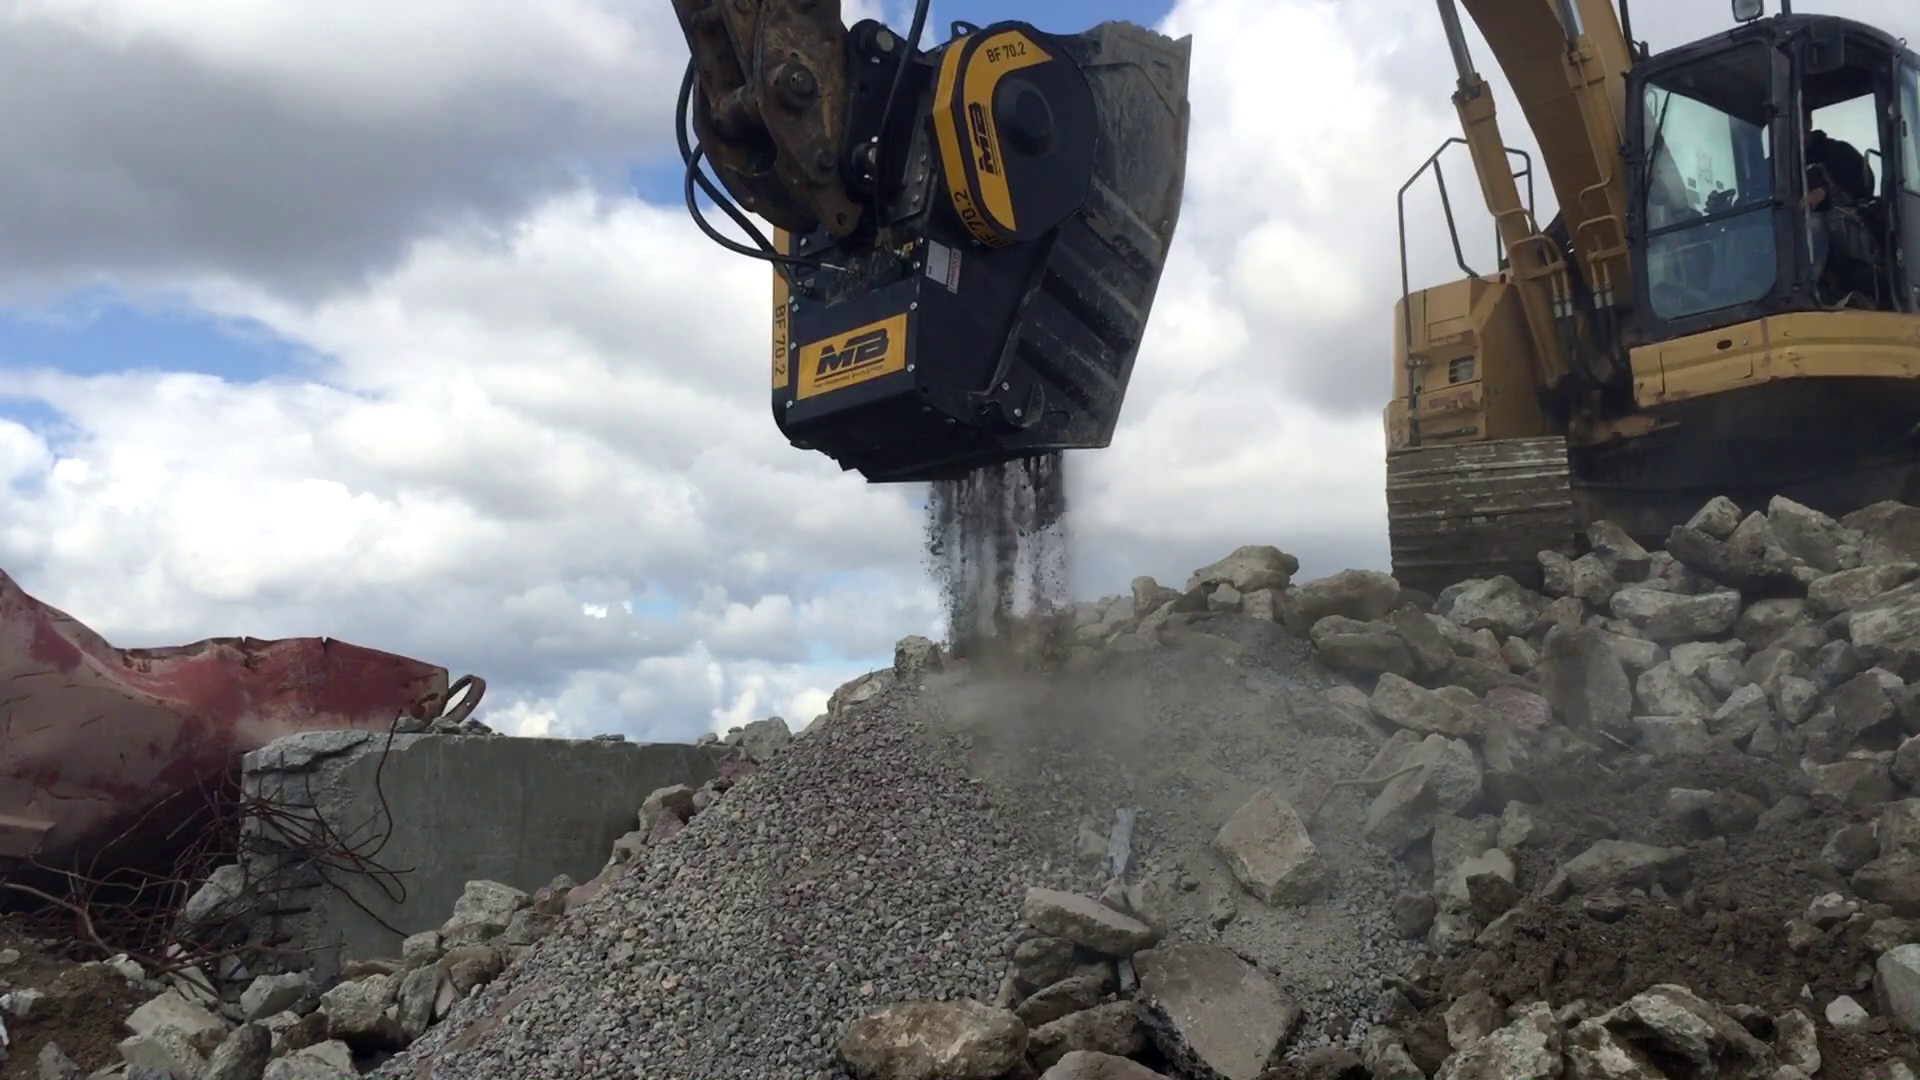 The BF70.2 crusher bucket is processing reinforced concrete to be sold to customers